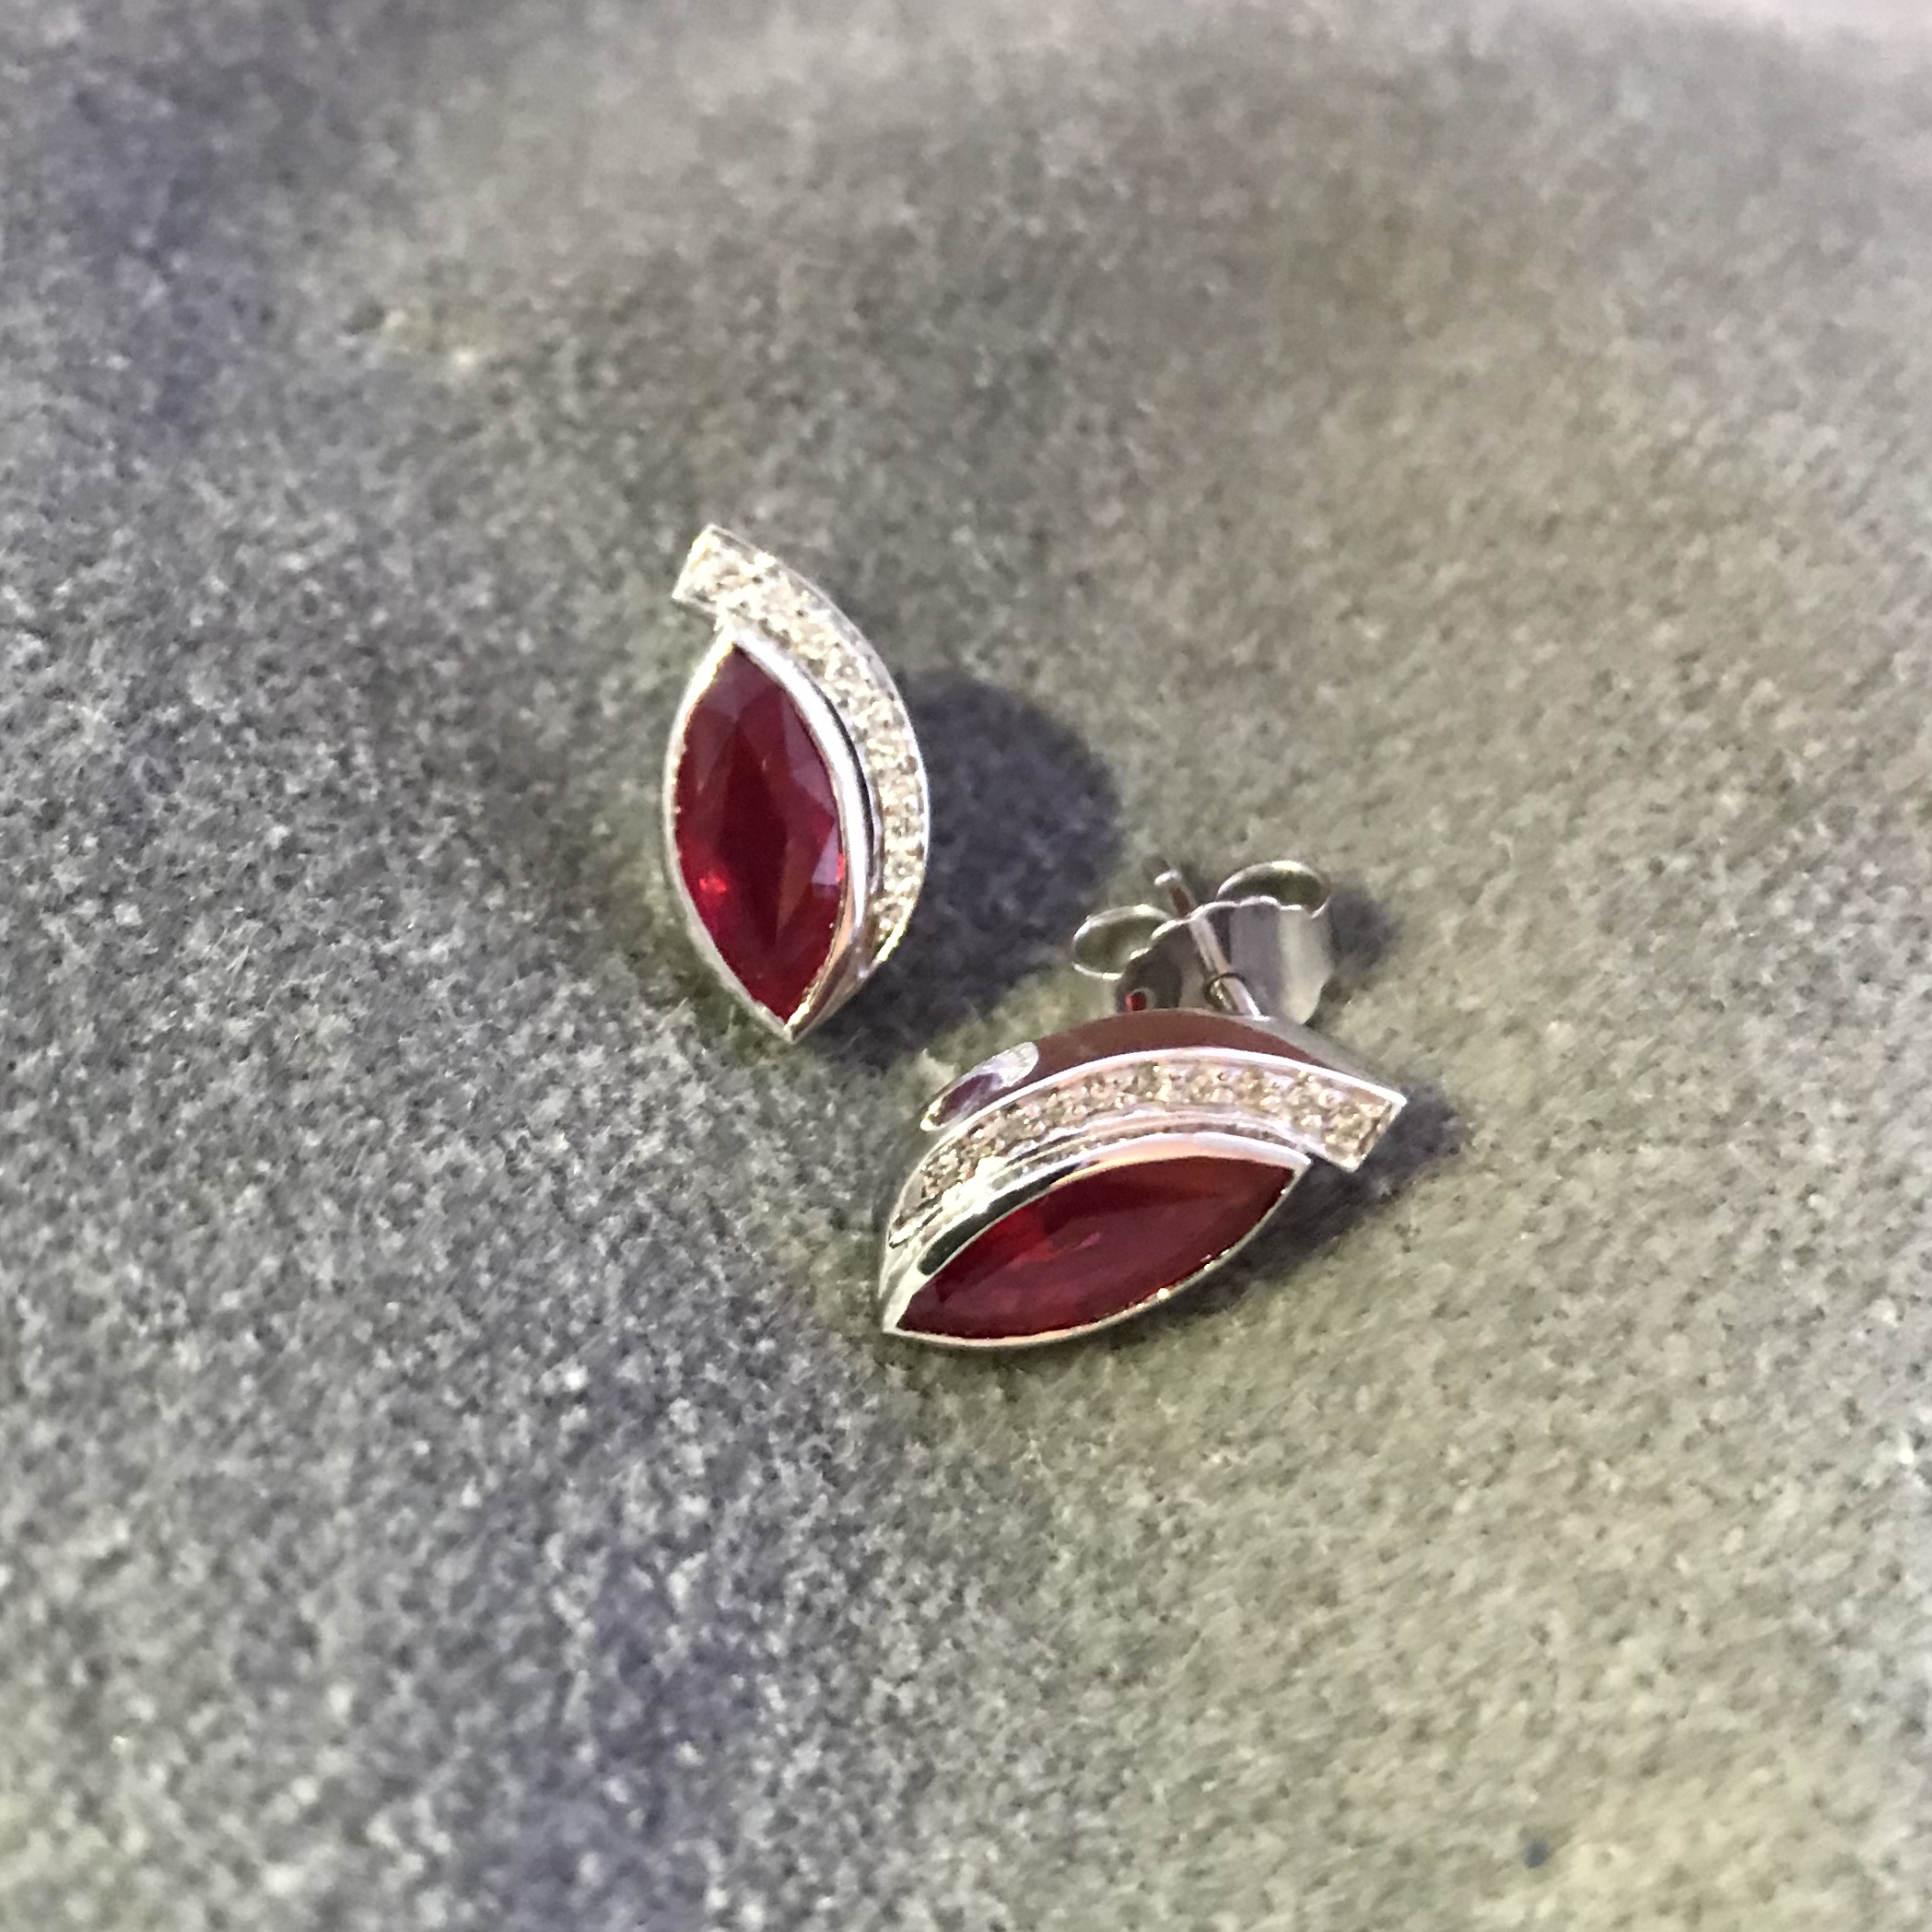 Made to order - These beautiful marquise Rubies set in 18ct white gold with Diamonds were commissioned for a ruby anniversary.